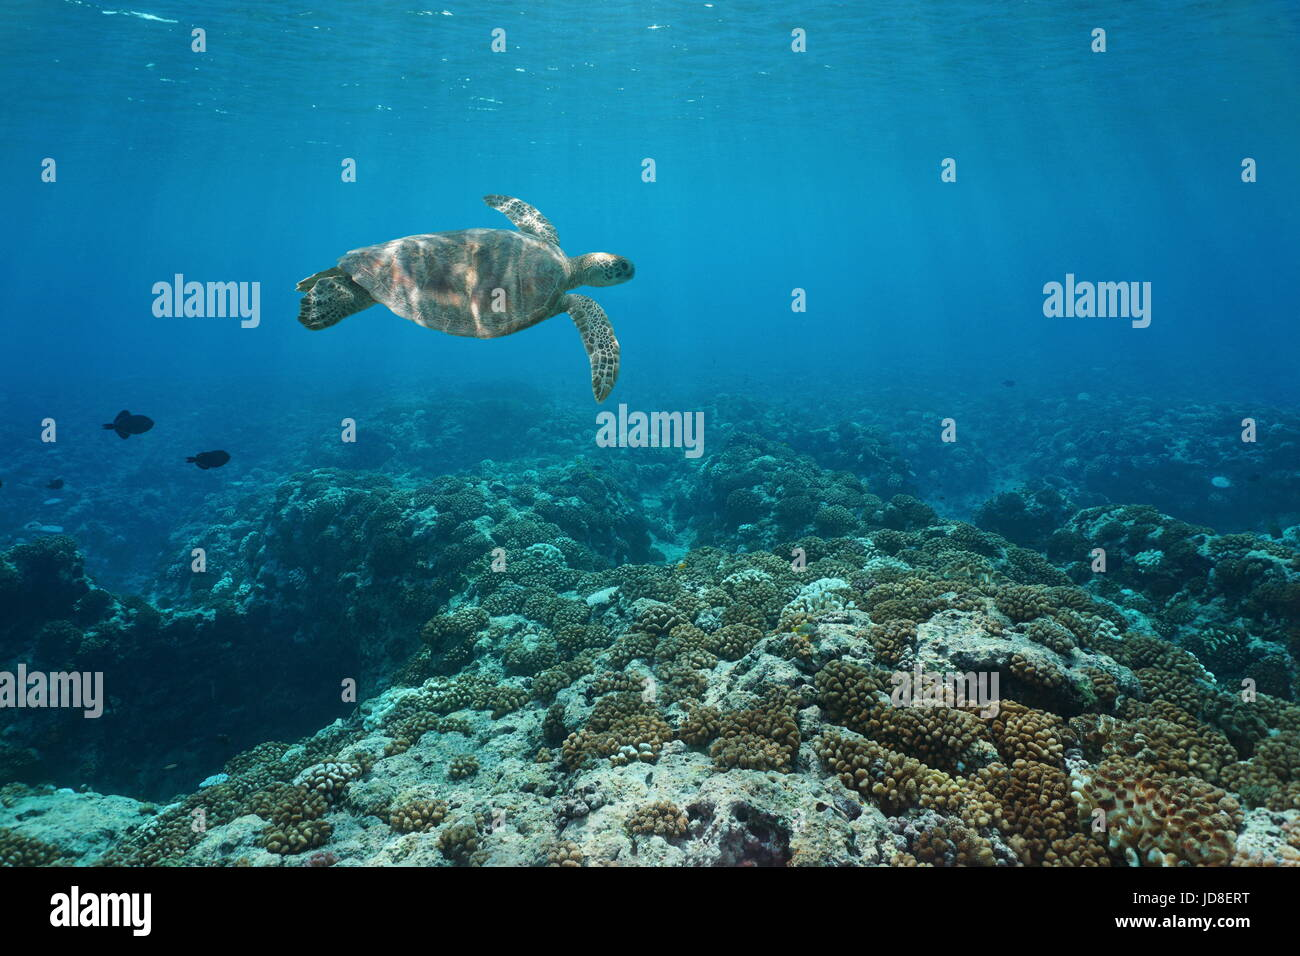 A green sea turtle underwater swims over a coral reef, Pacific ocean outer reef of Huahine island, French Polynesia - Stock Image